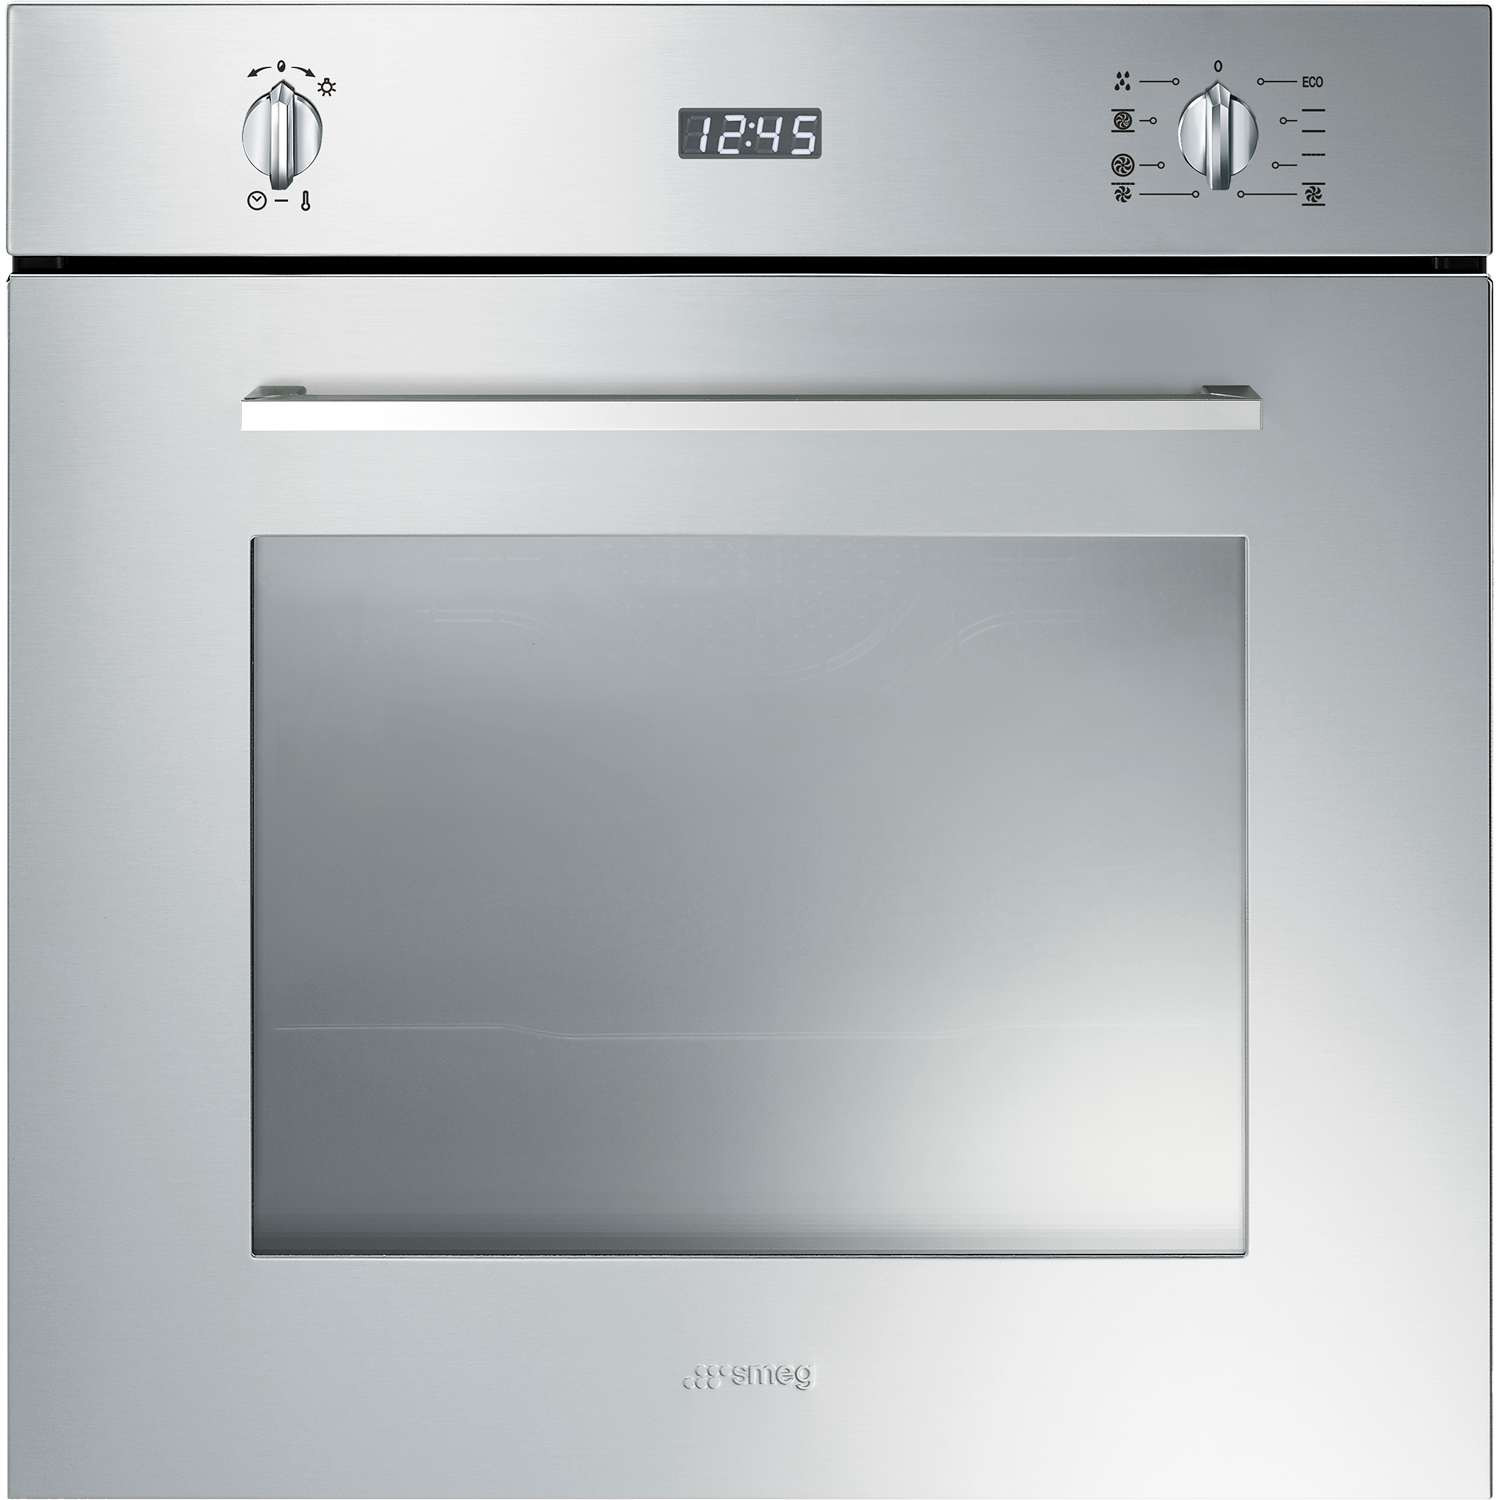 Buy Smeg Cucina Built-In Pyrolytic 60cm Stainless Steel Single Oven ...